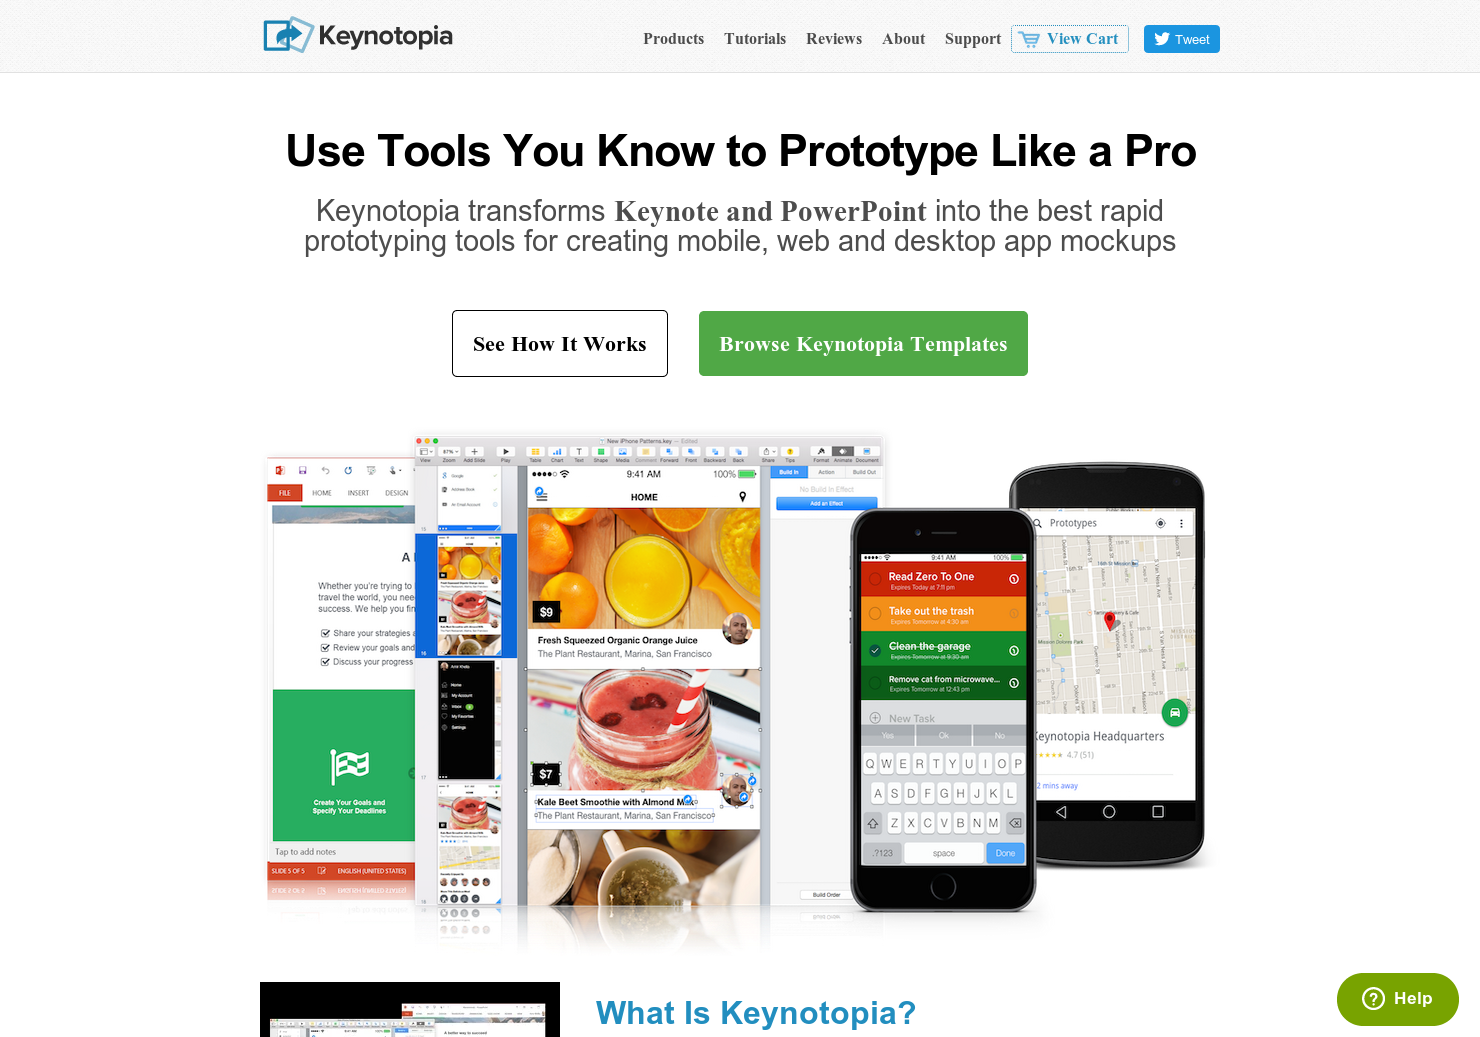 Keynotopia - Prototyping straight into Keynote or Powerpoint | Product